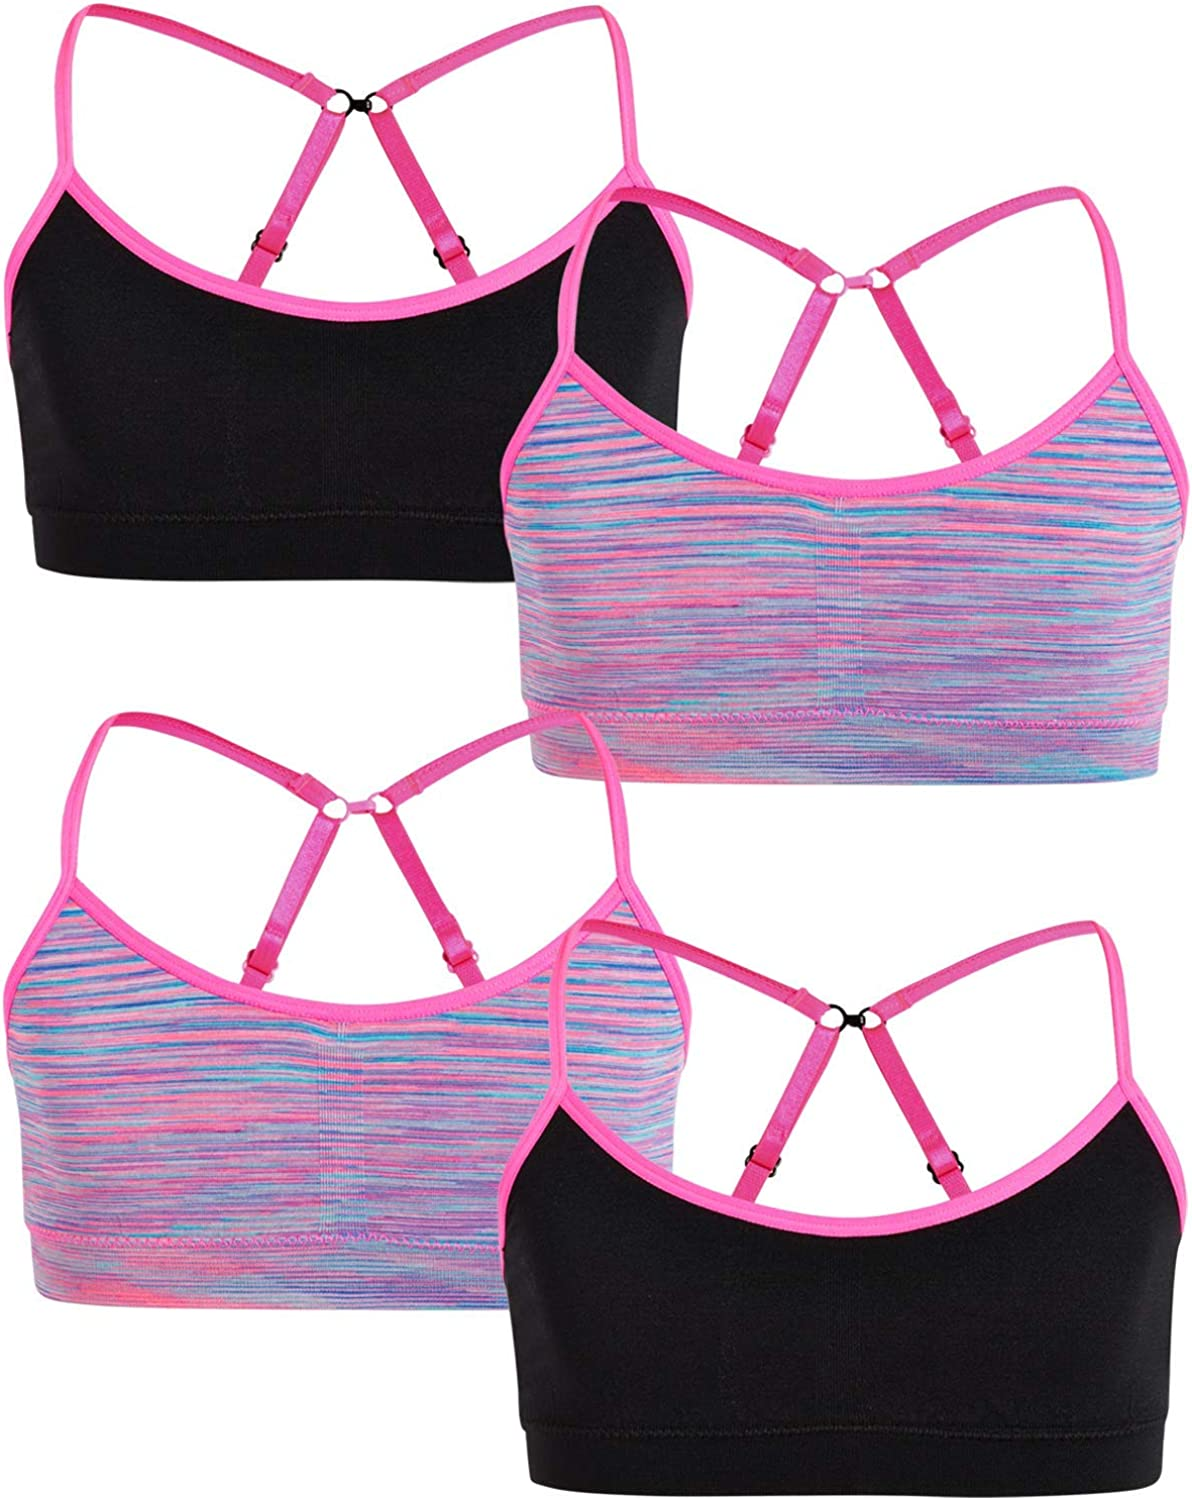 Rene Rofe Girl Training Bralette 4 Pack Seamless Racerback Sports Bra with Removable Pads